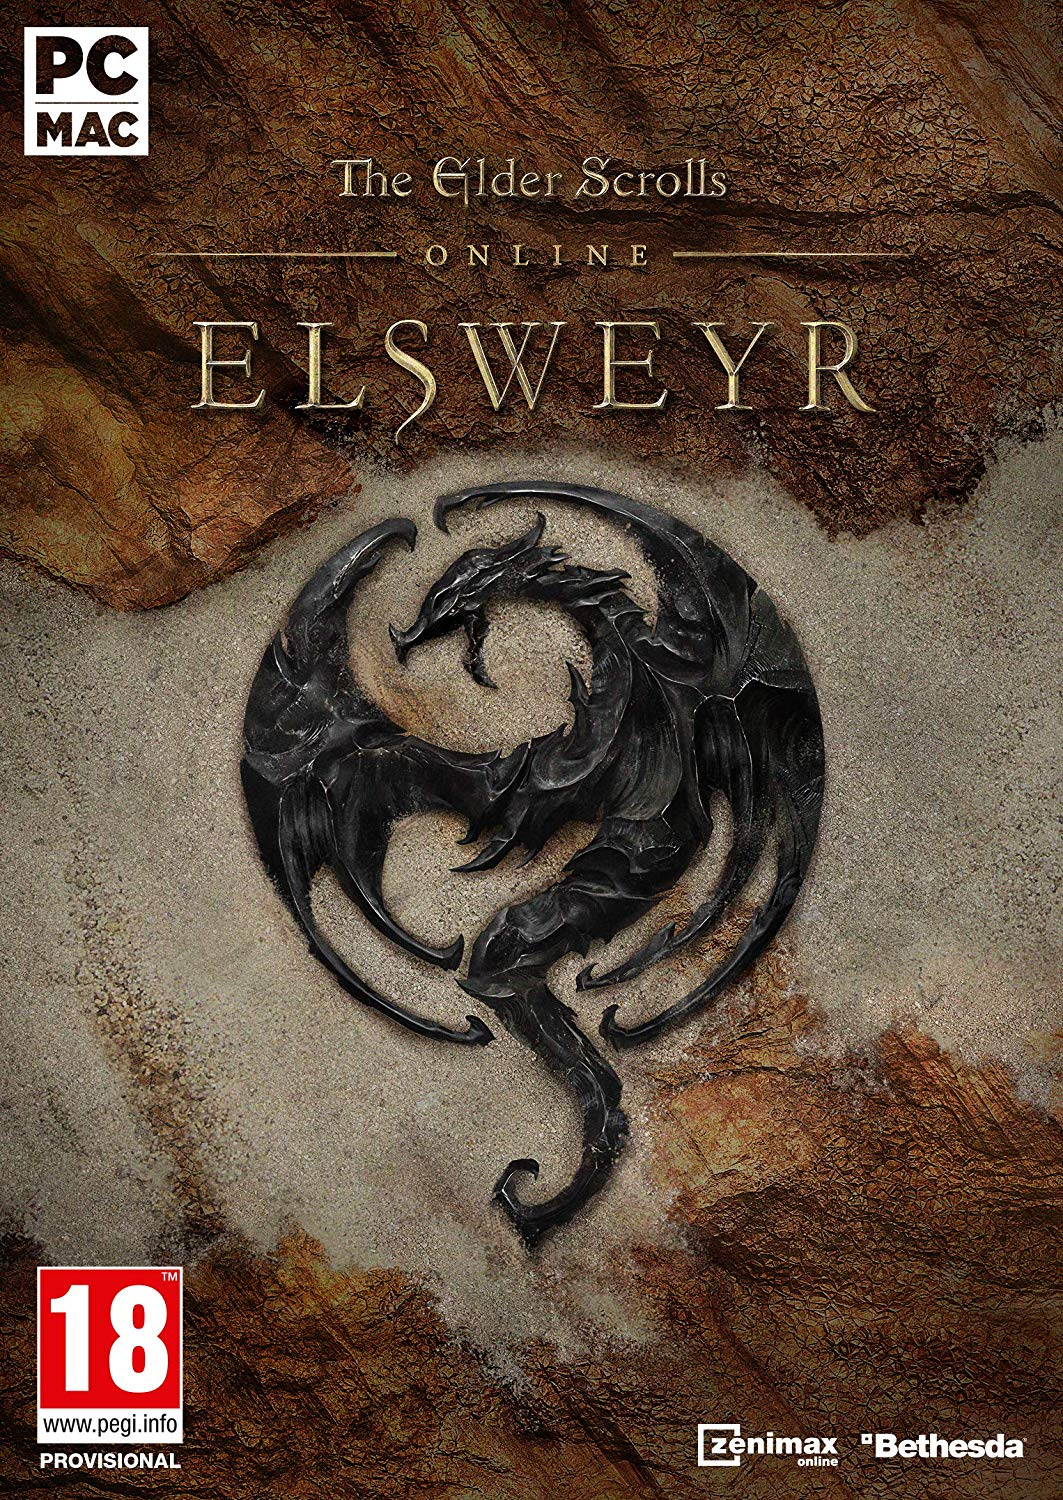 The Elder Scrolls Online: Elsweyr (PC)